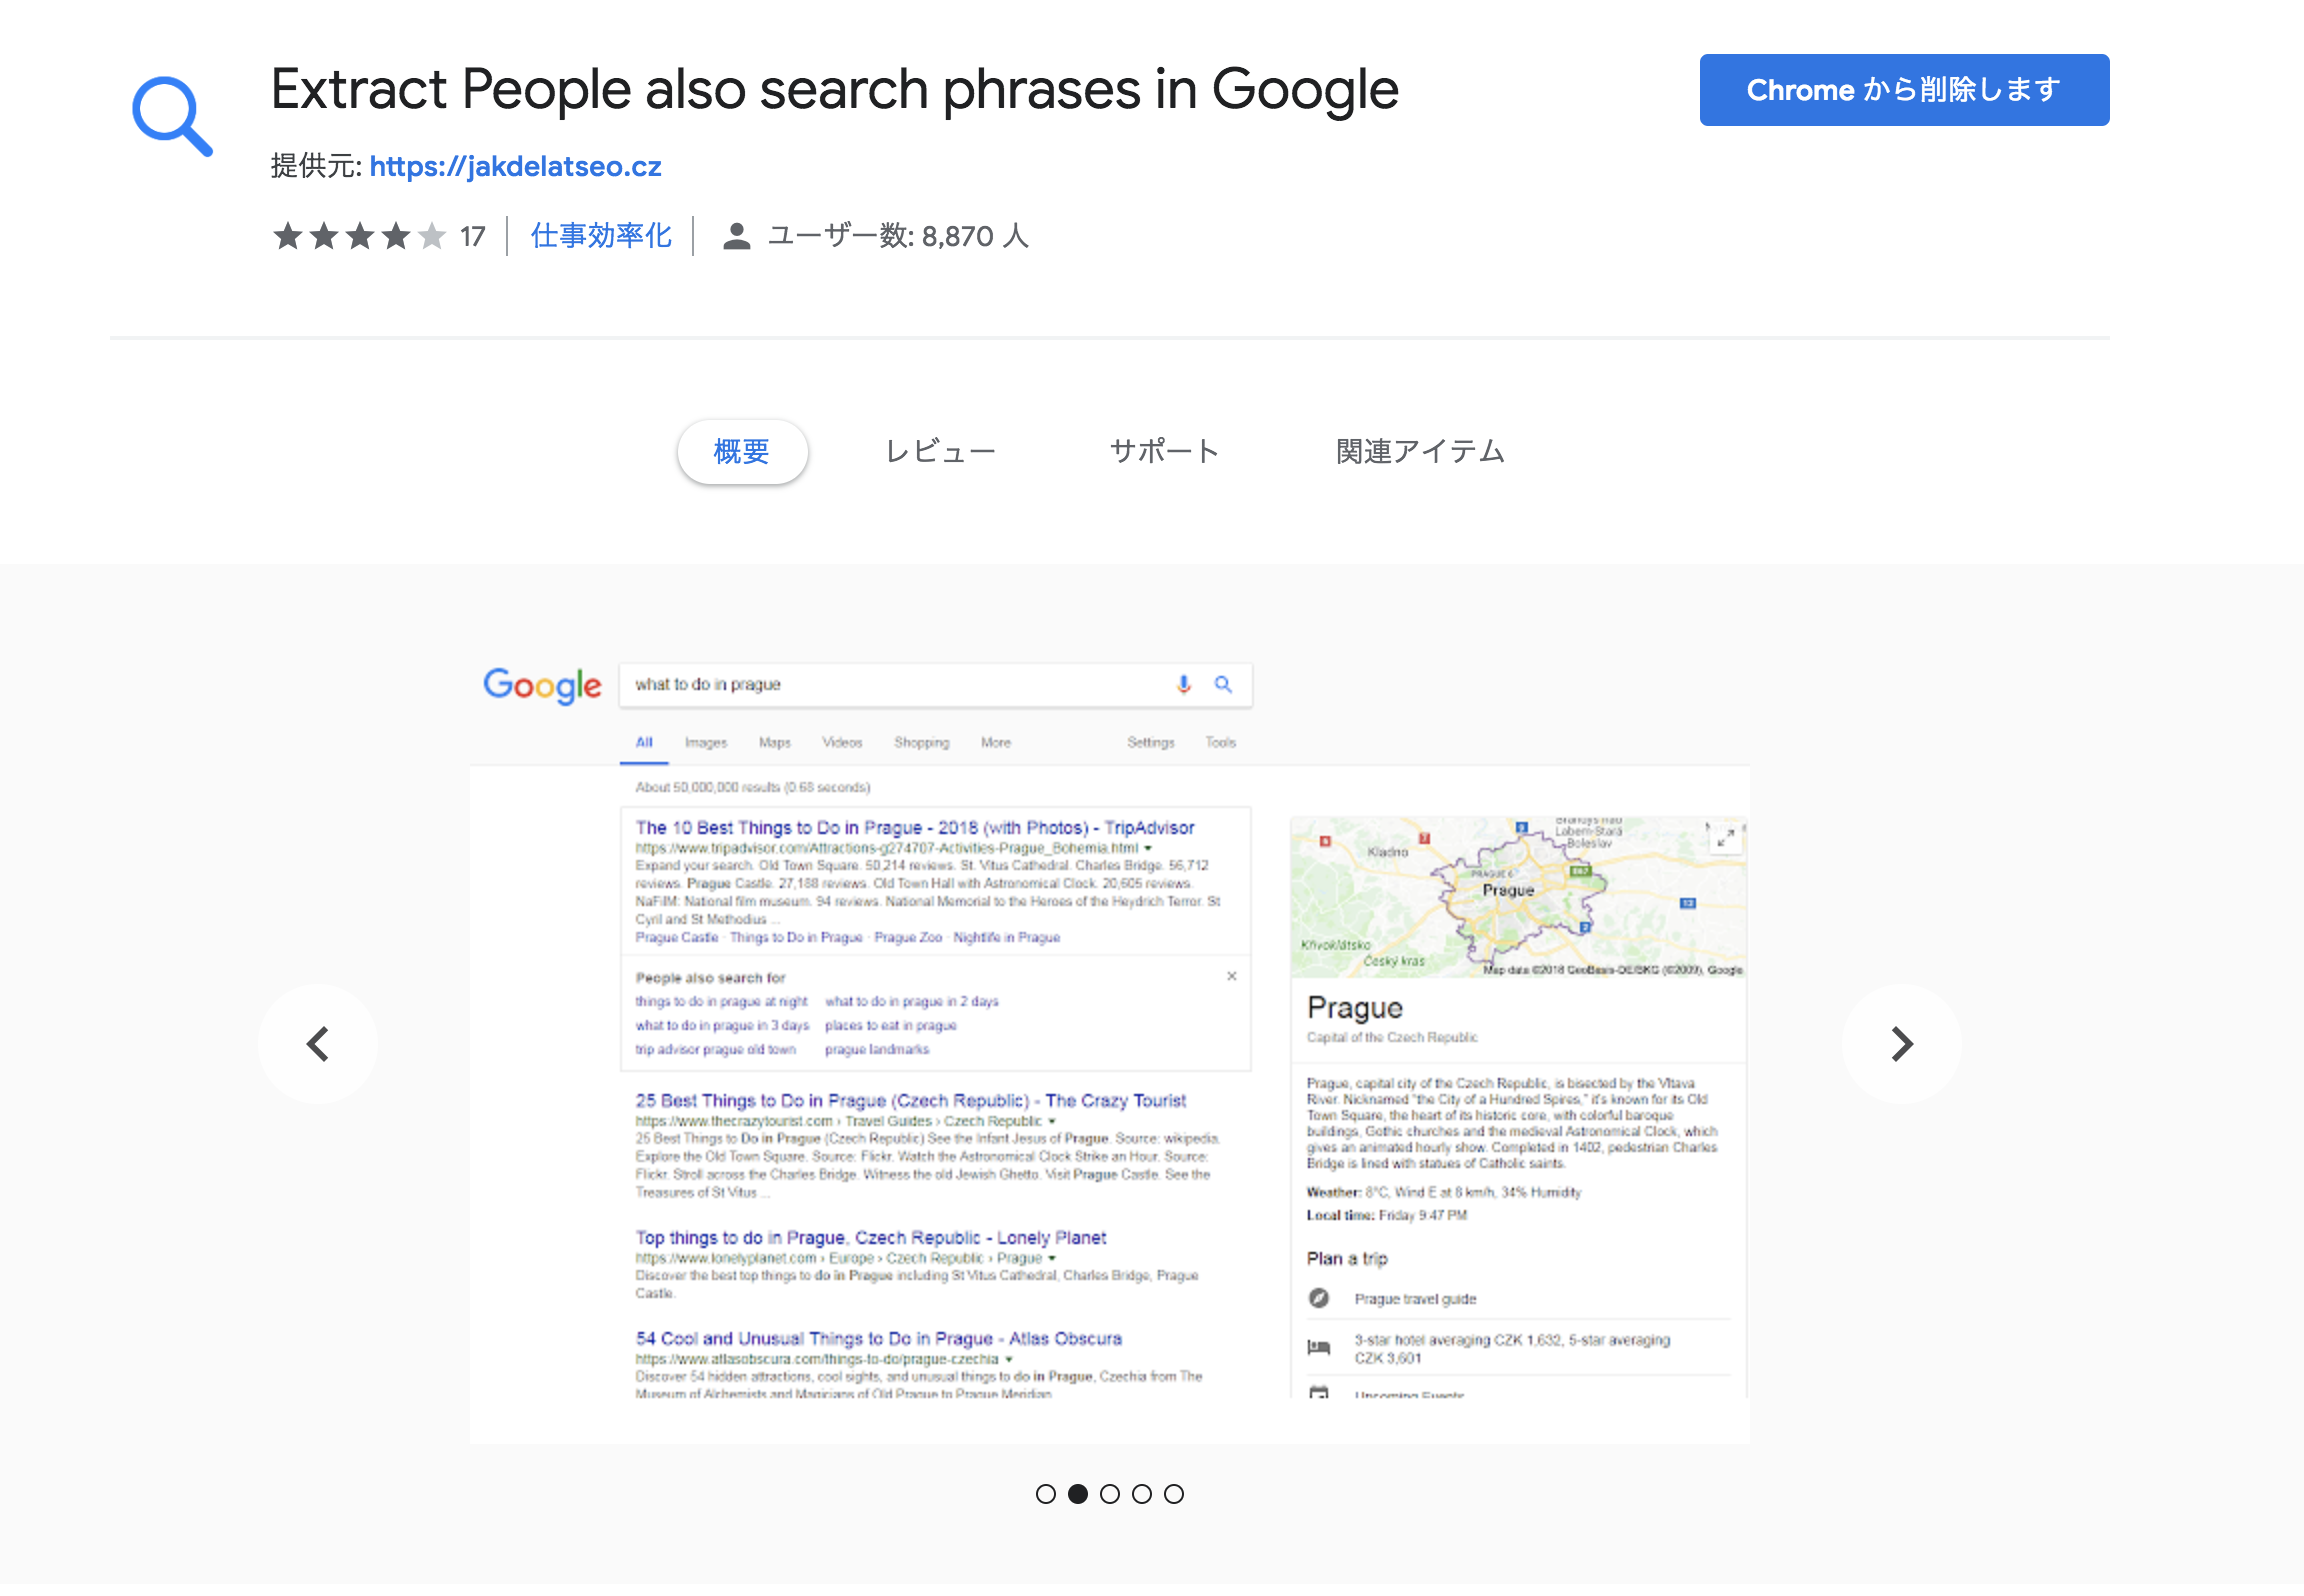 GoogleChrome(グーグルクローム) 拡張機能 Extract People also search phrases in Google